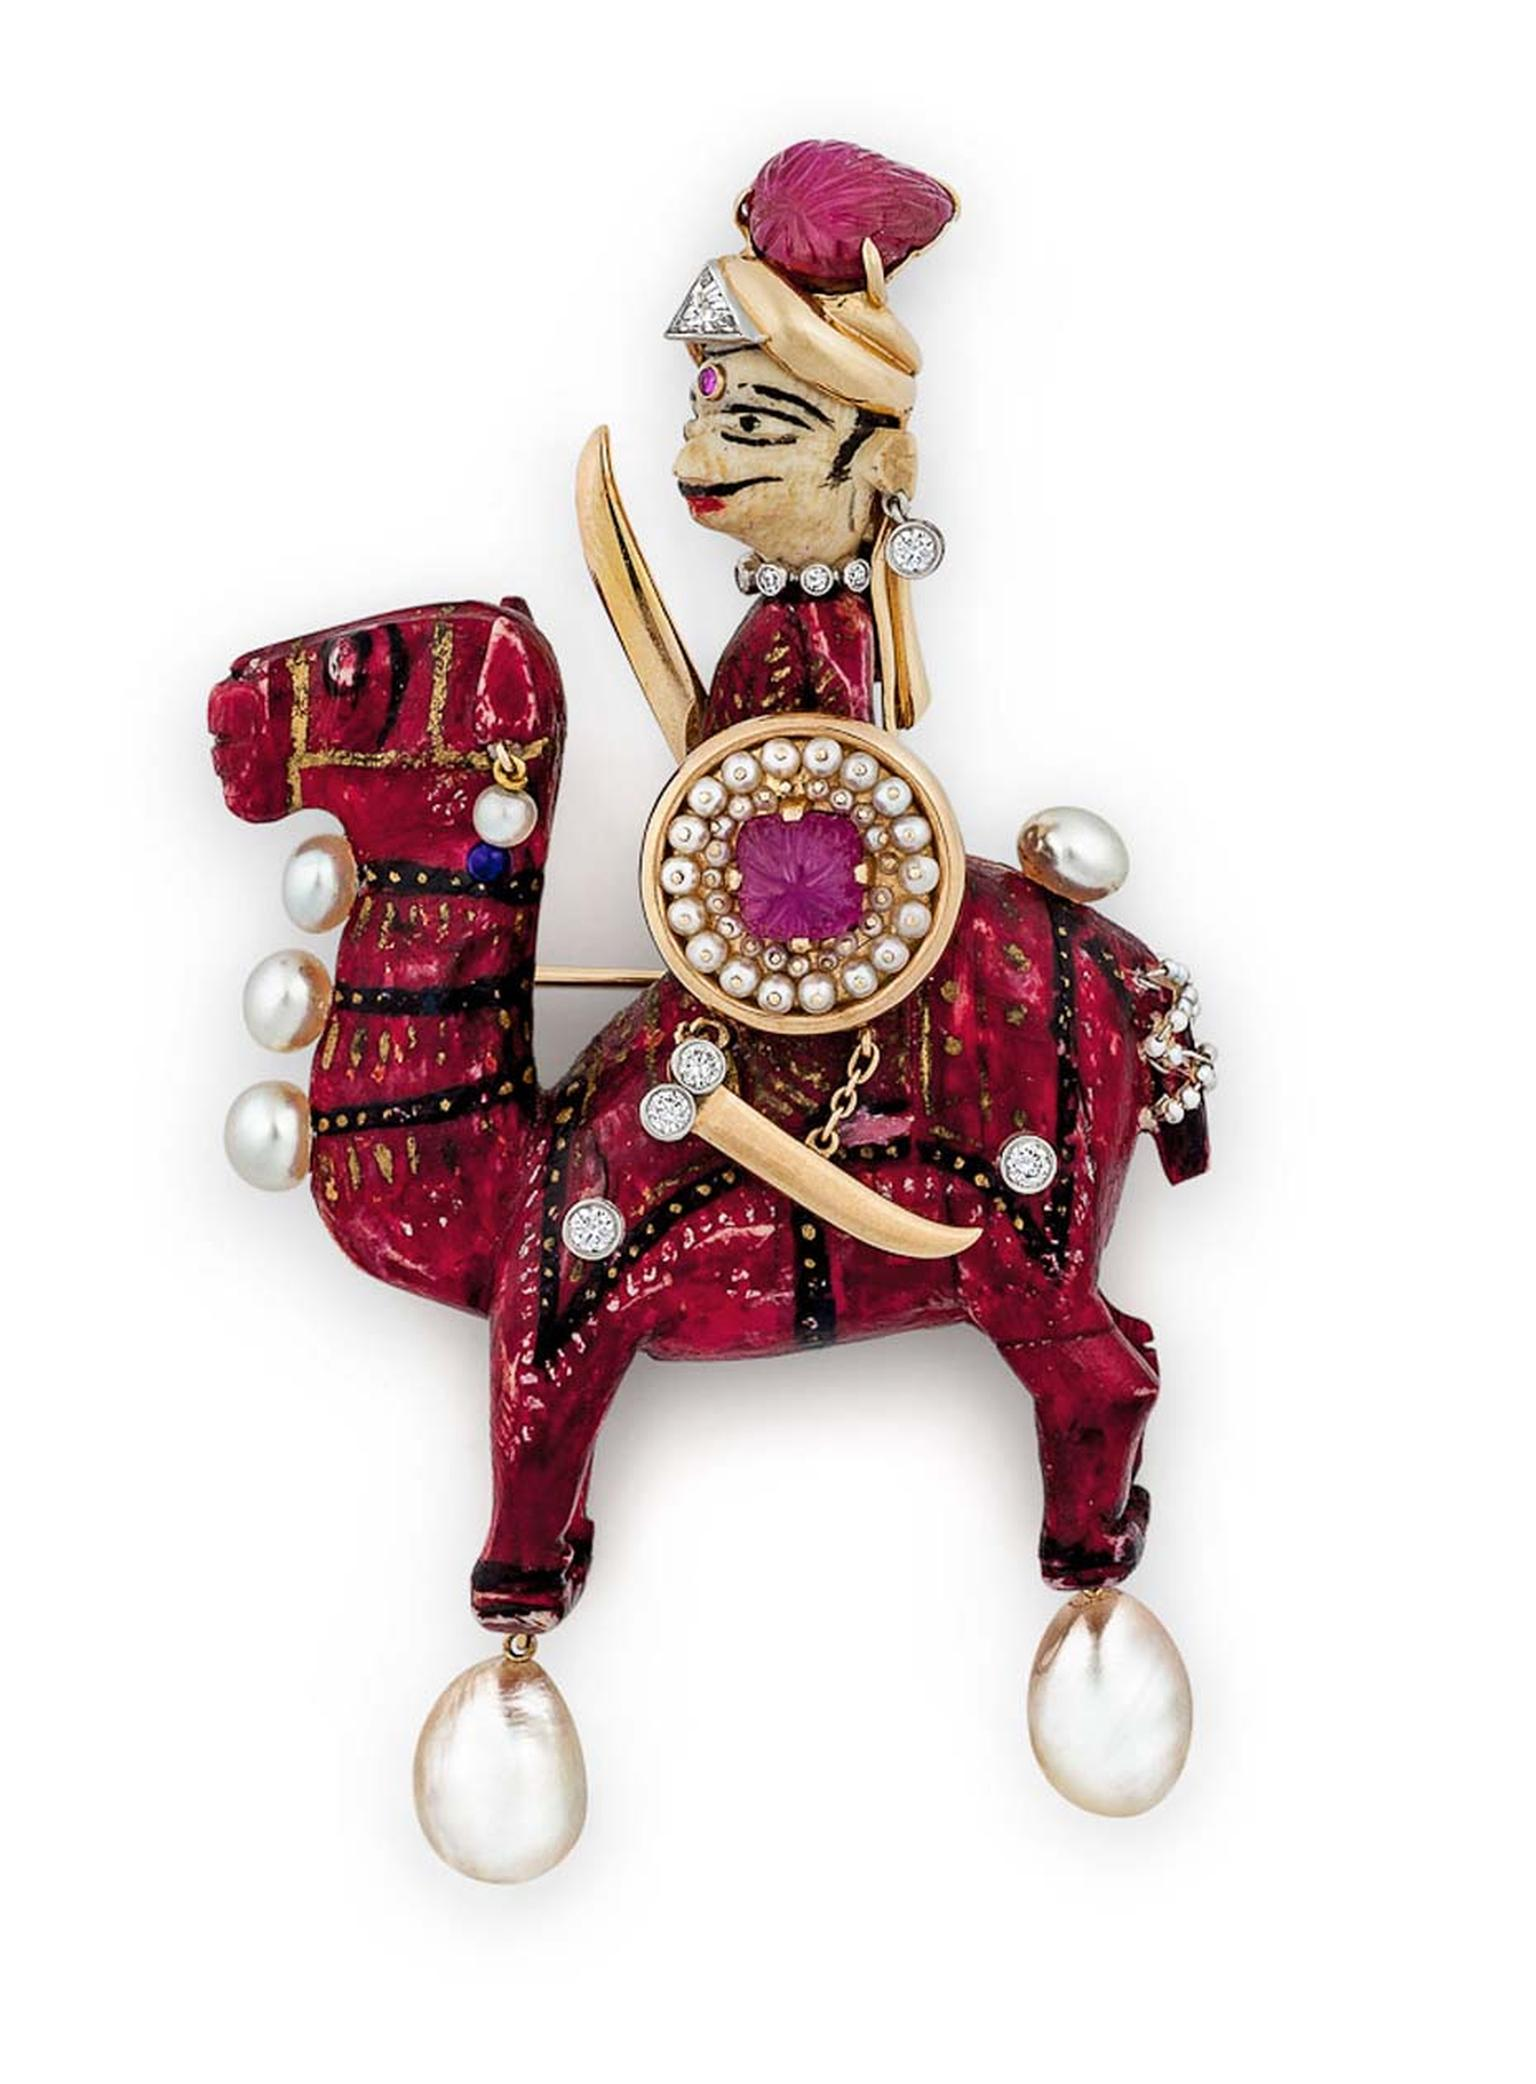 Warrior on Camel brooch by Verdura, once owned by Doris Duke, available at Steven Fox's Connecticut boutique.